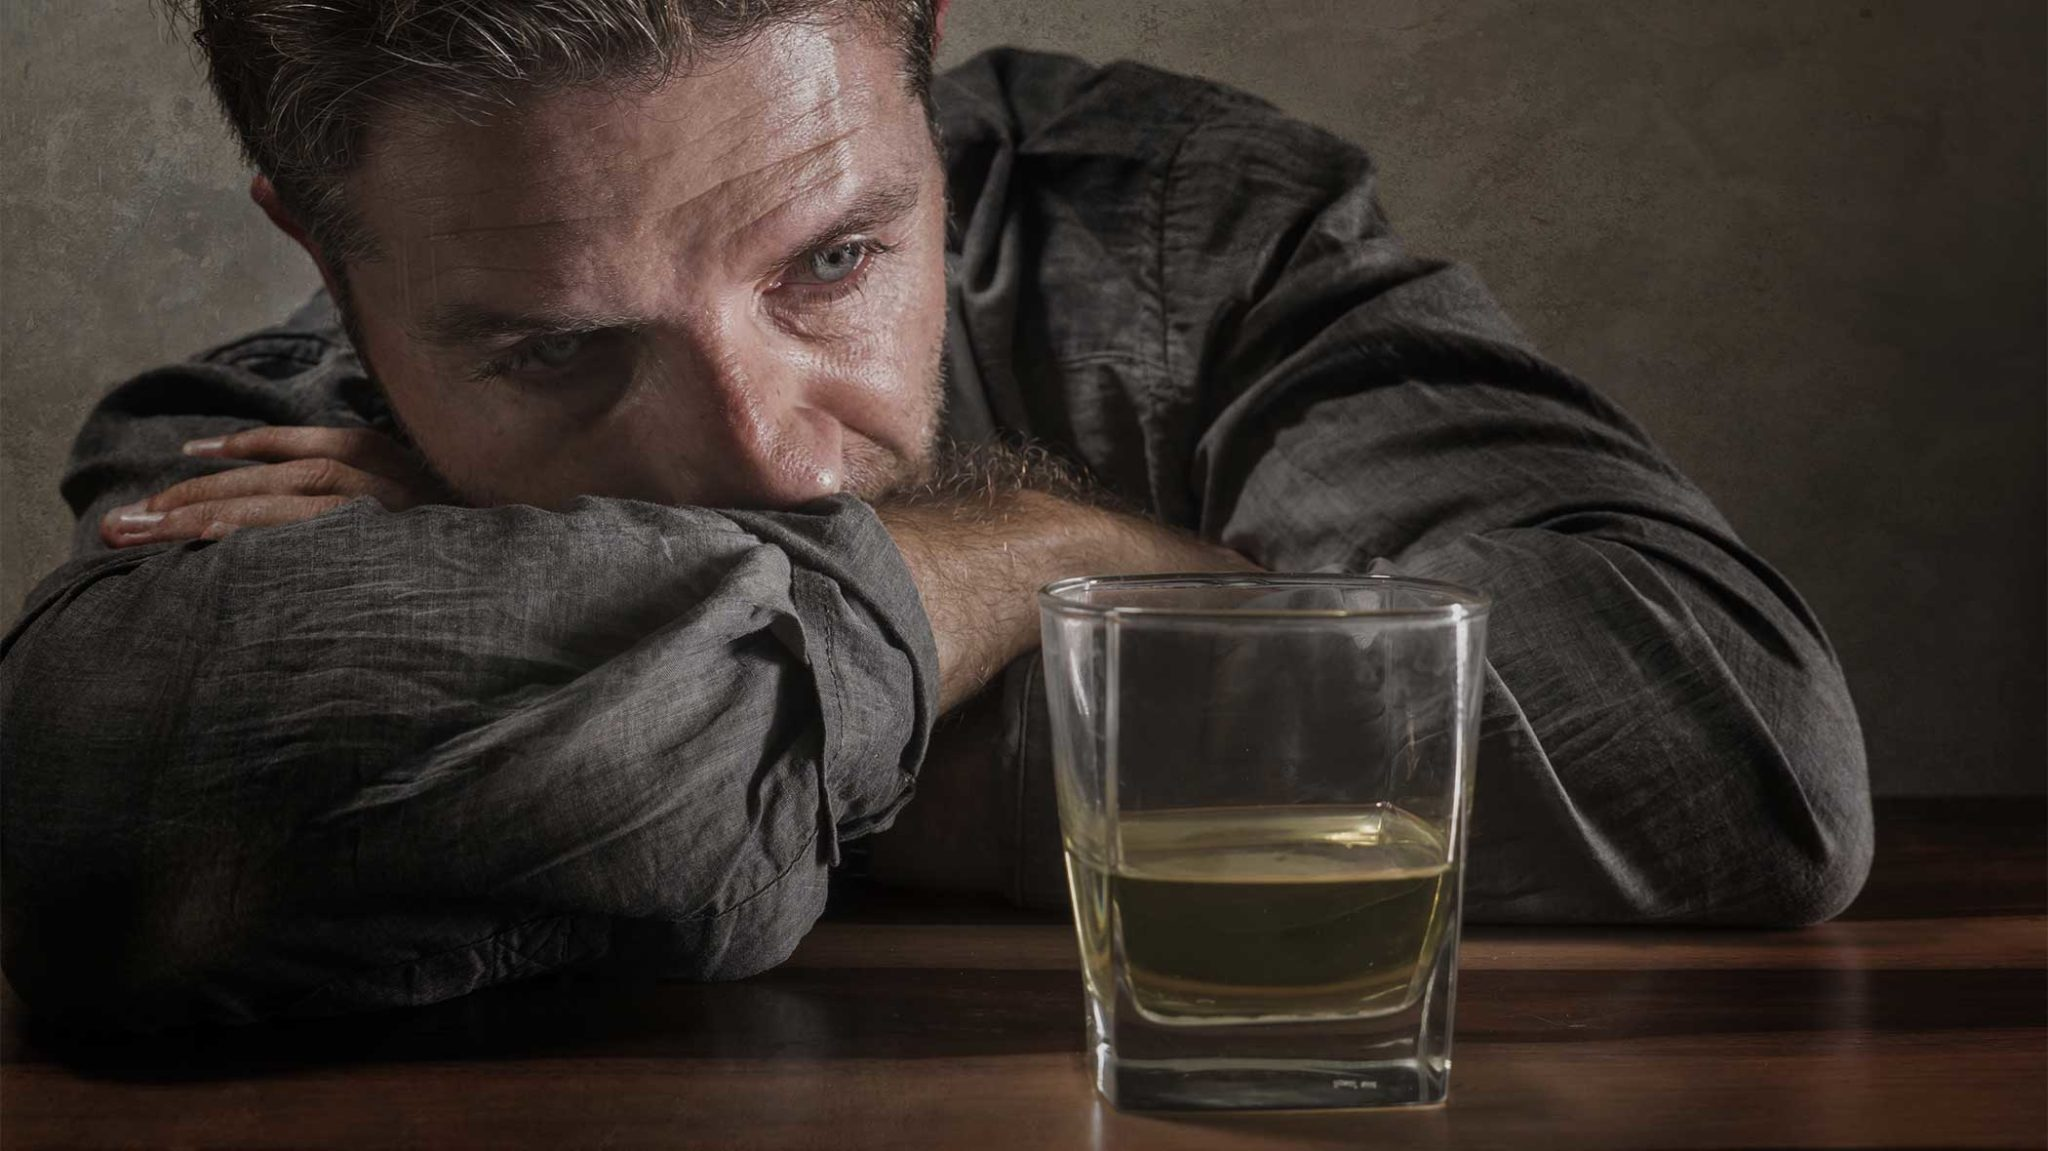 Drinking Alcohol Every Day | What Are The Effects?